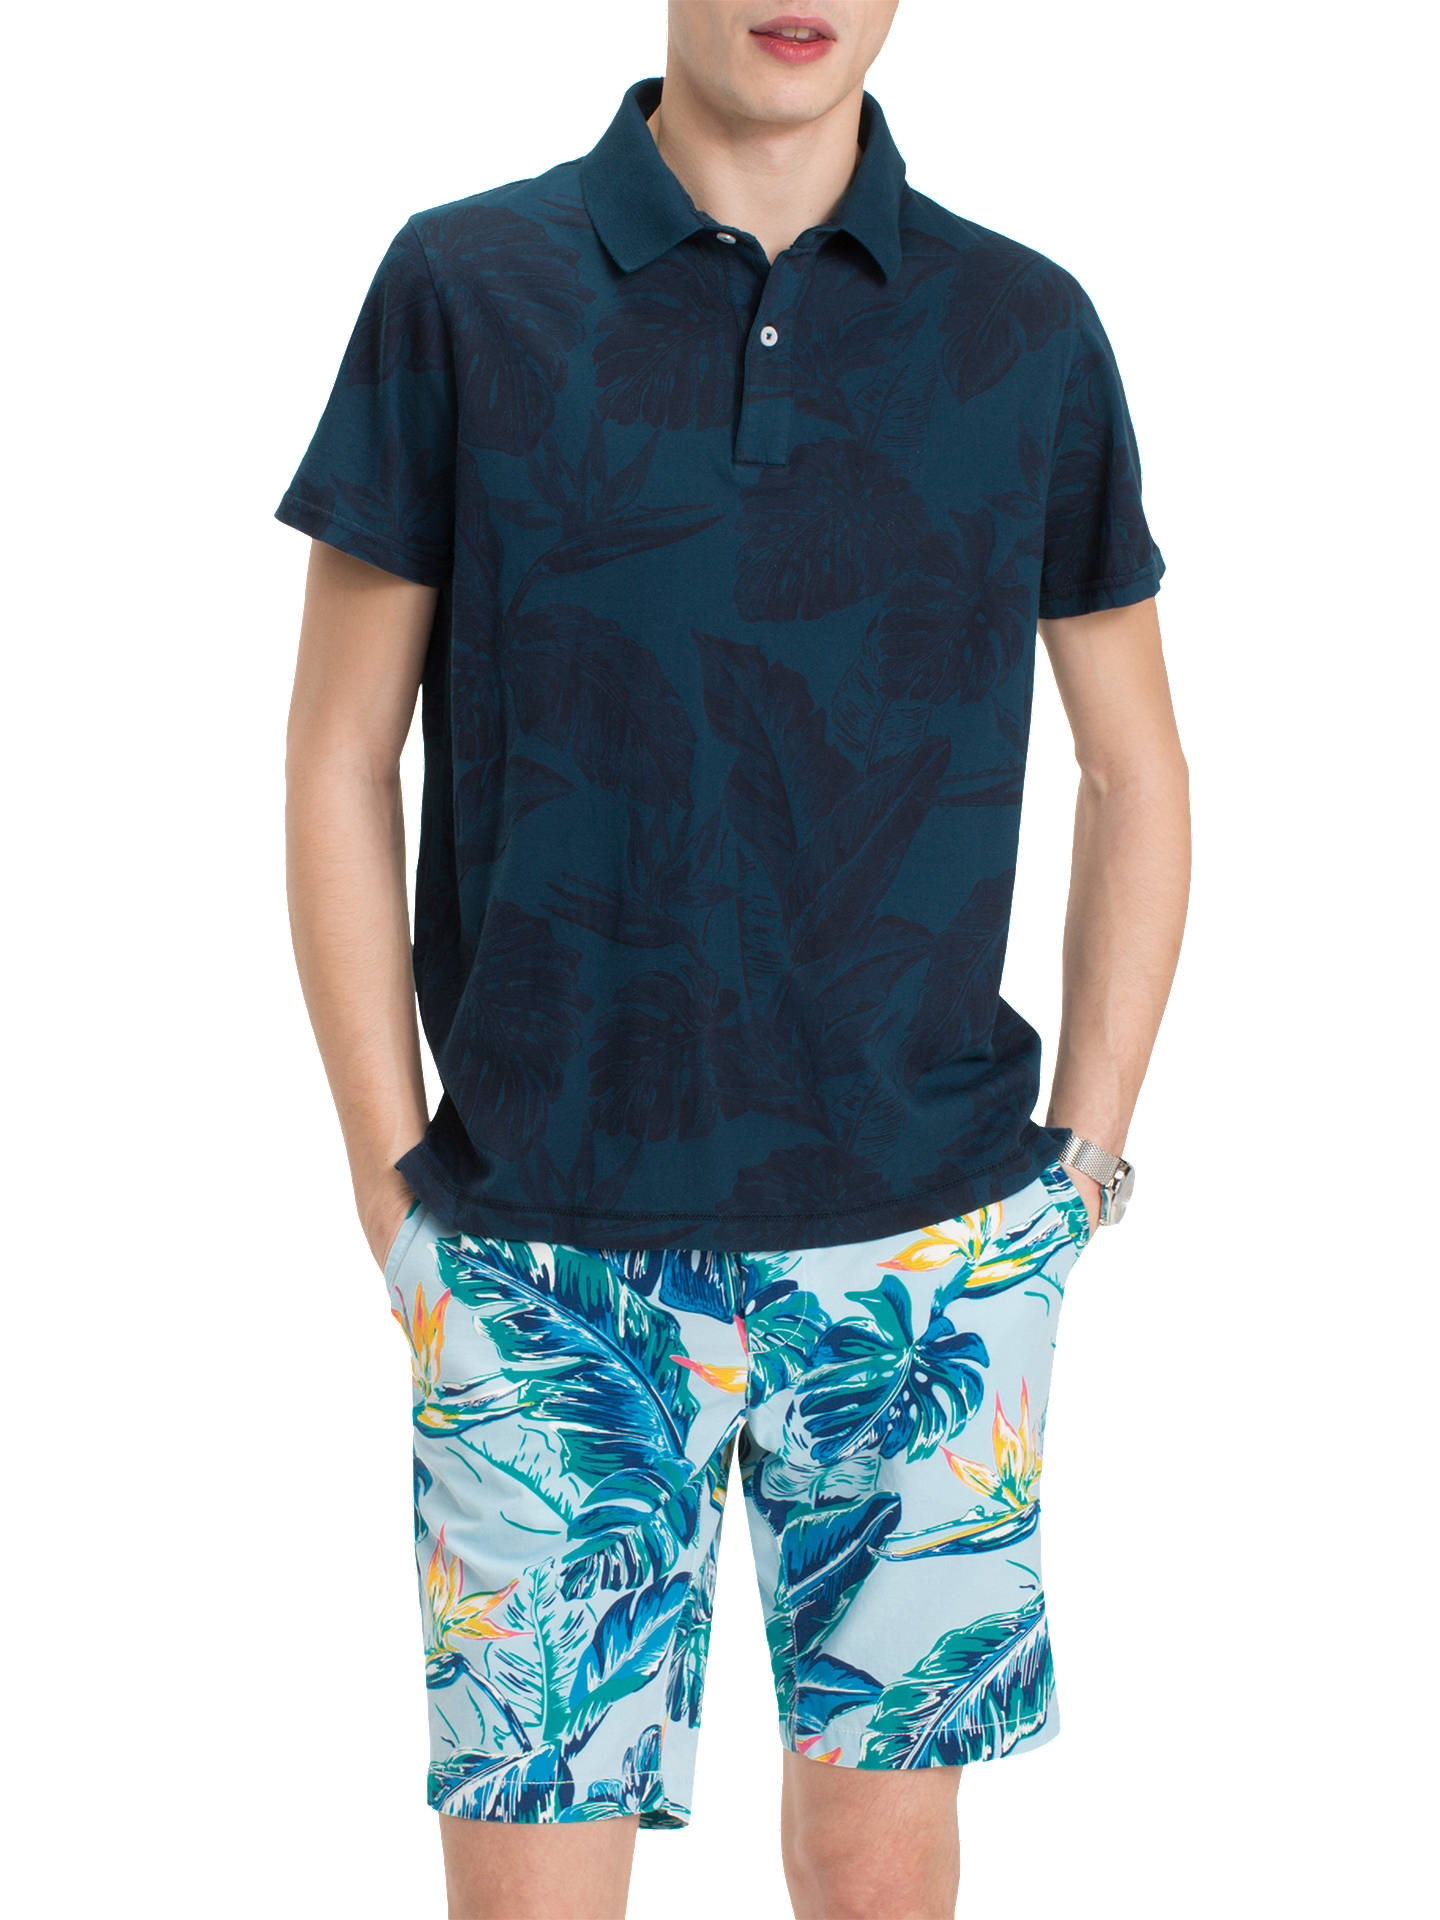 895fbf552 Buy Tommy Hilfiger Short Sleeve Floral Polo Shirt, Blue, L Online at  johnlewis.